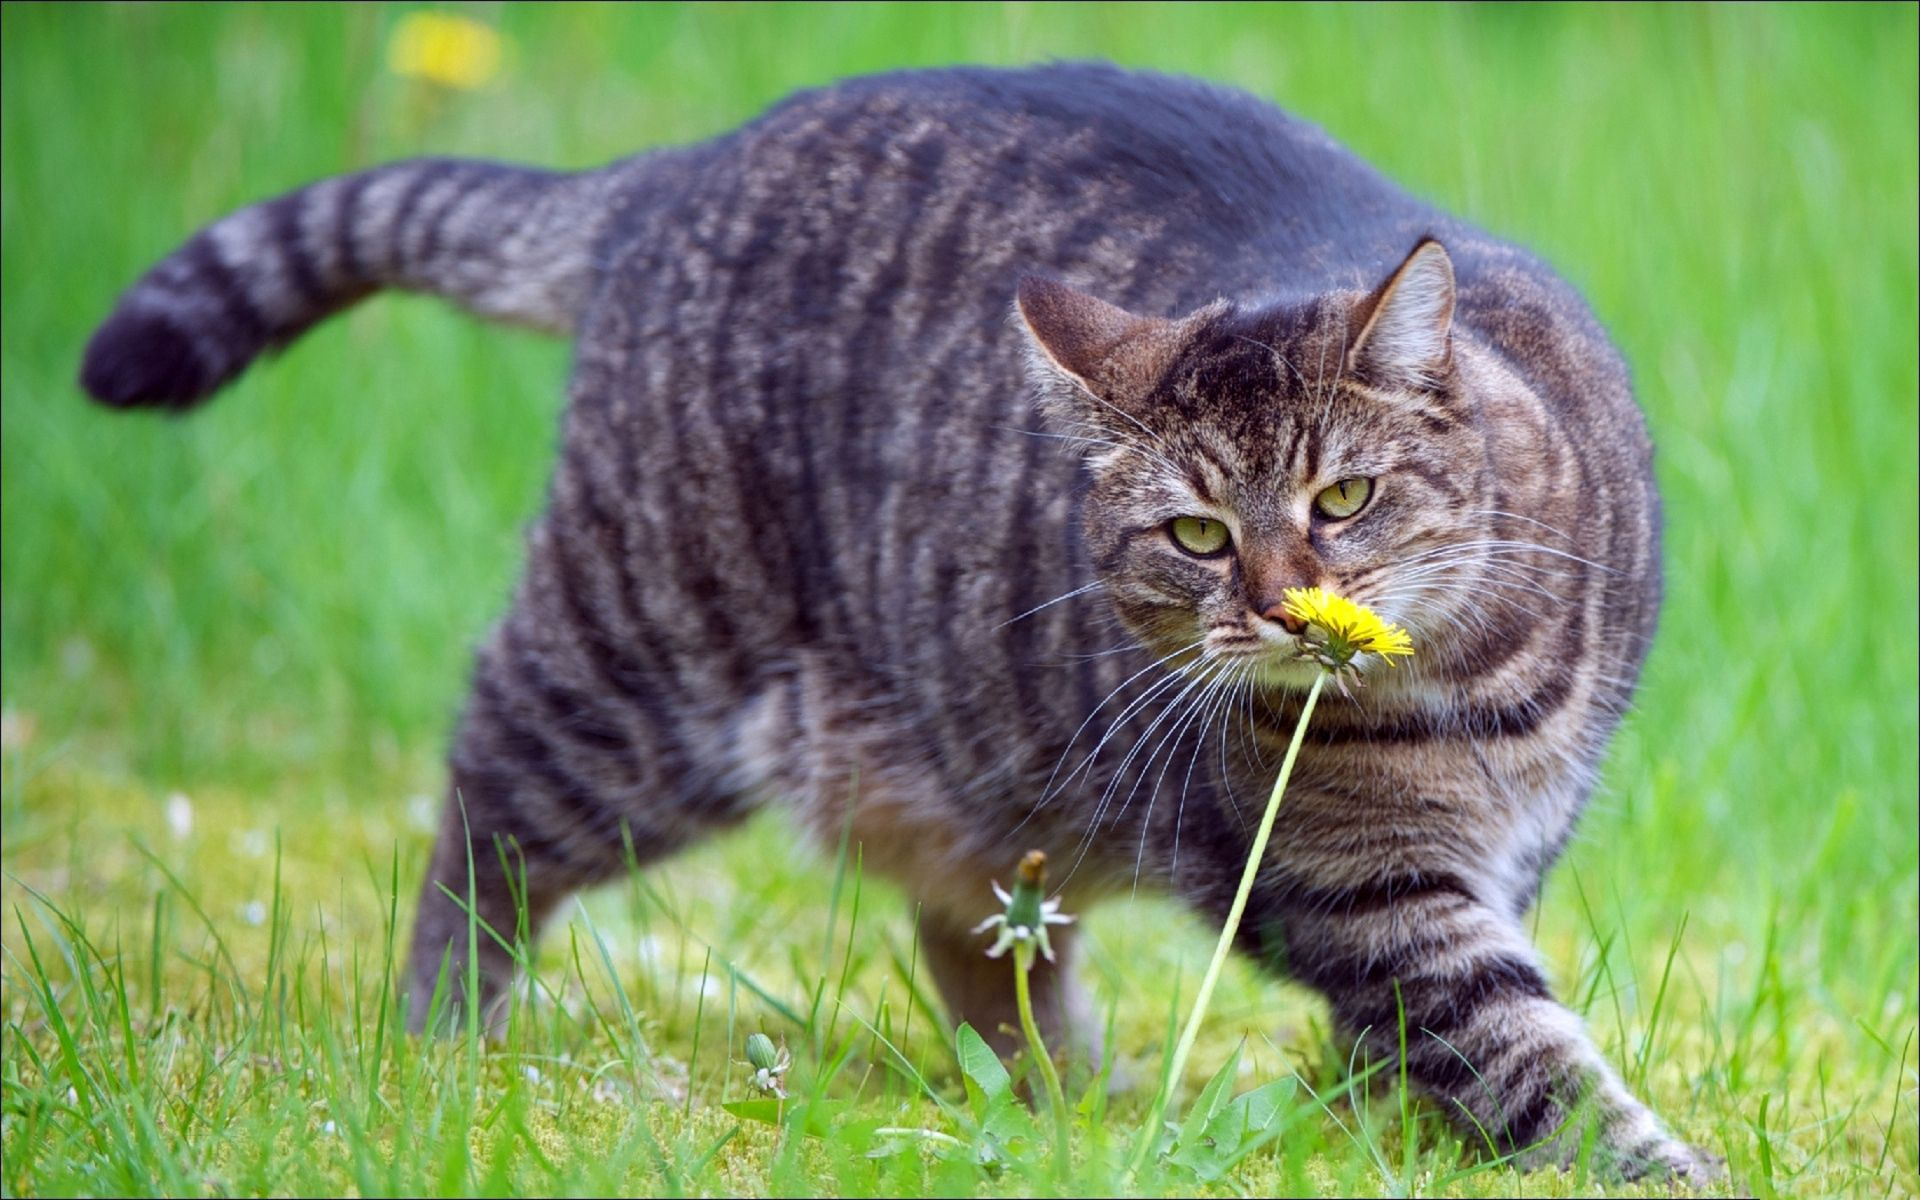 51411 download wallpaper Animals, Cat, Fat, Thick, Grass, To Sniff, Smell, Stroll screensavers and pictures for free